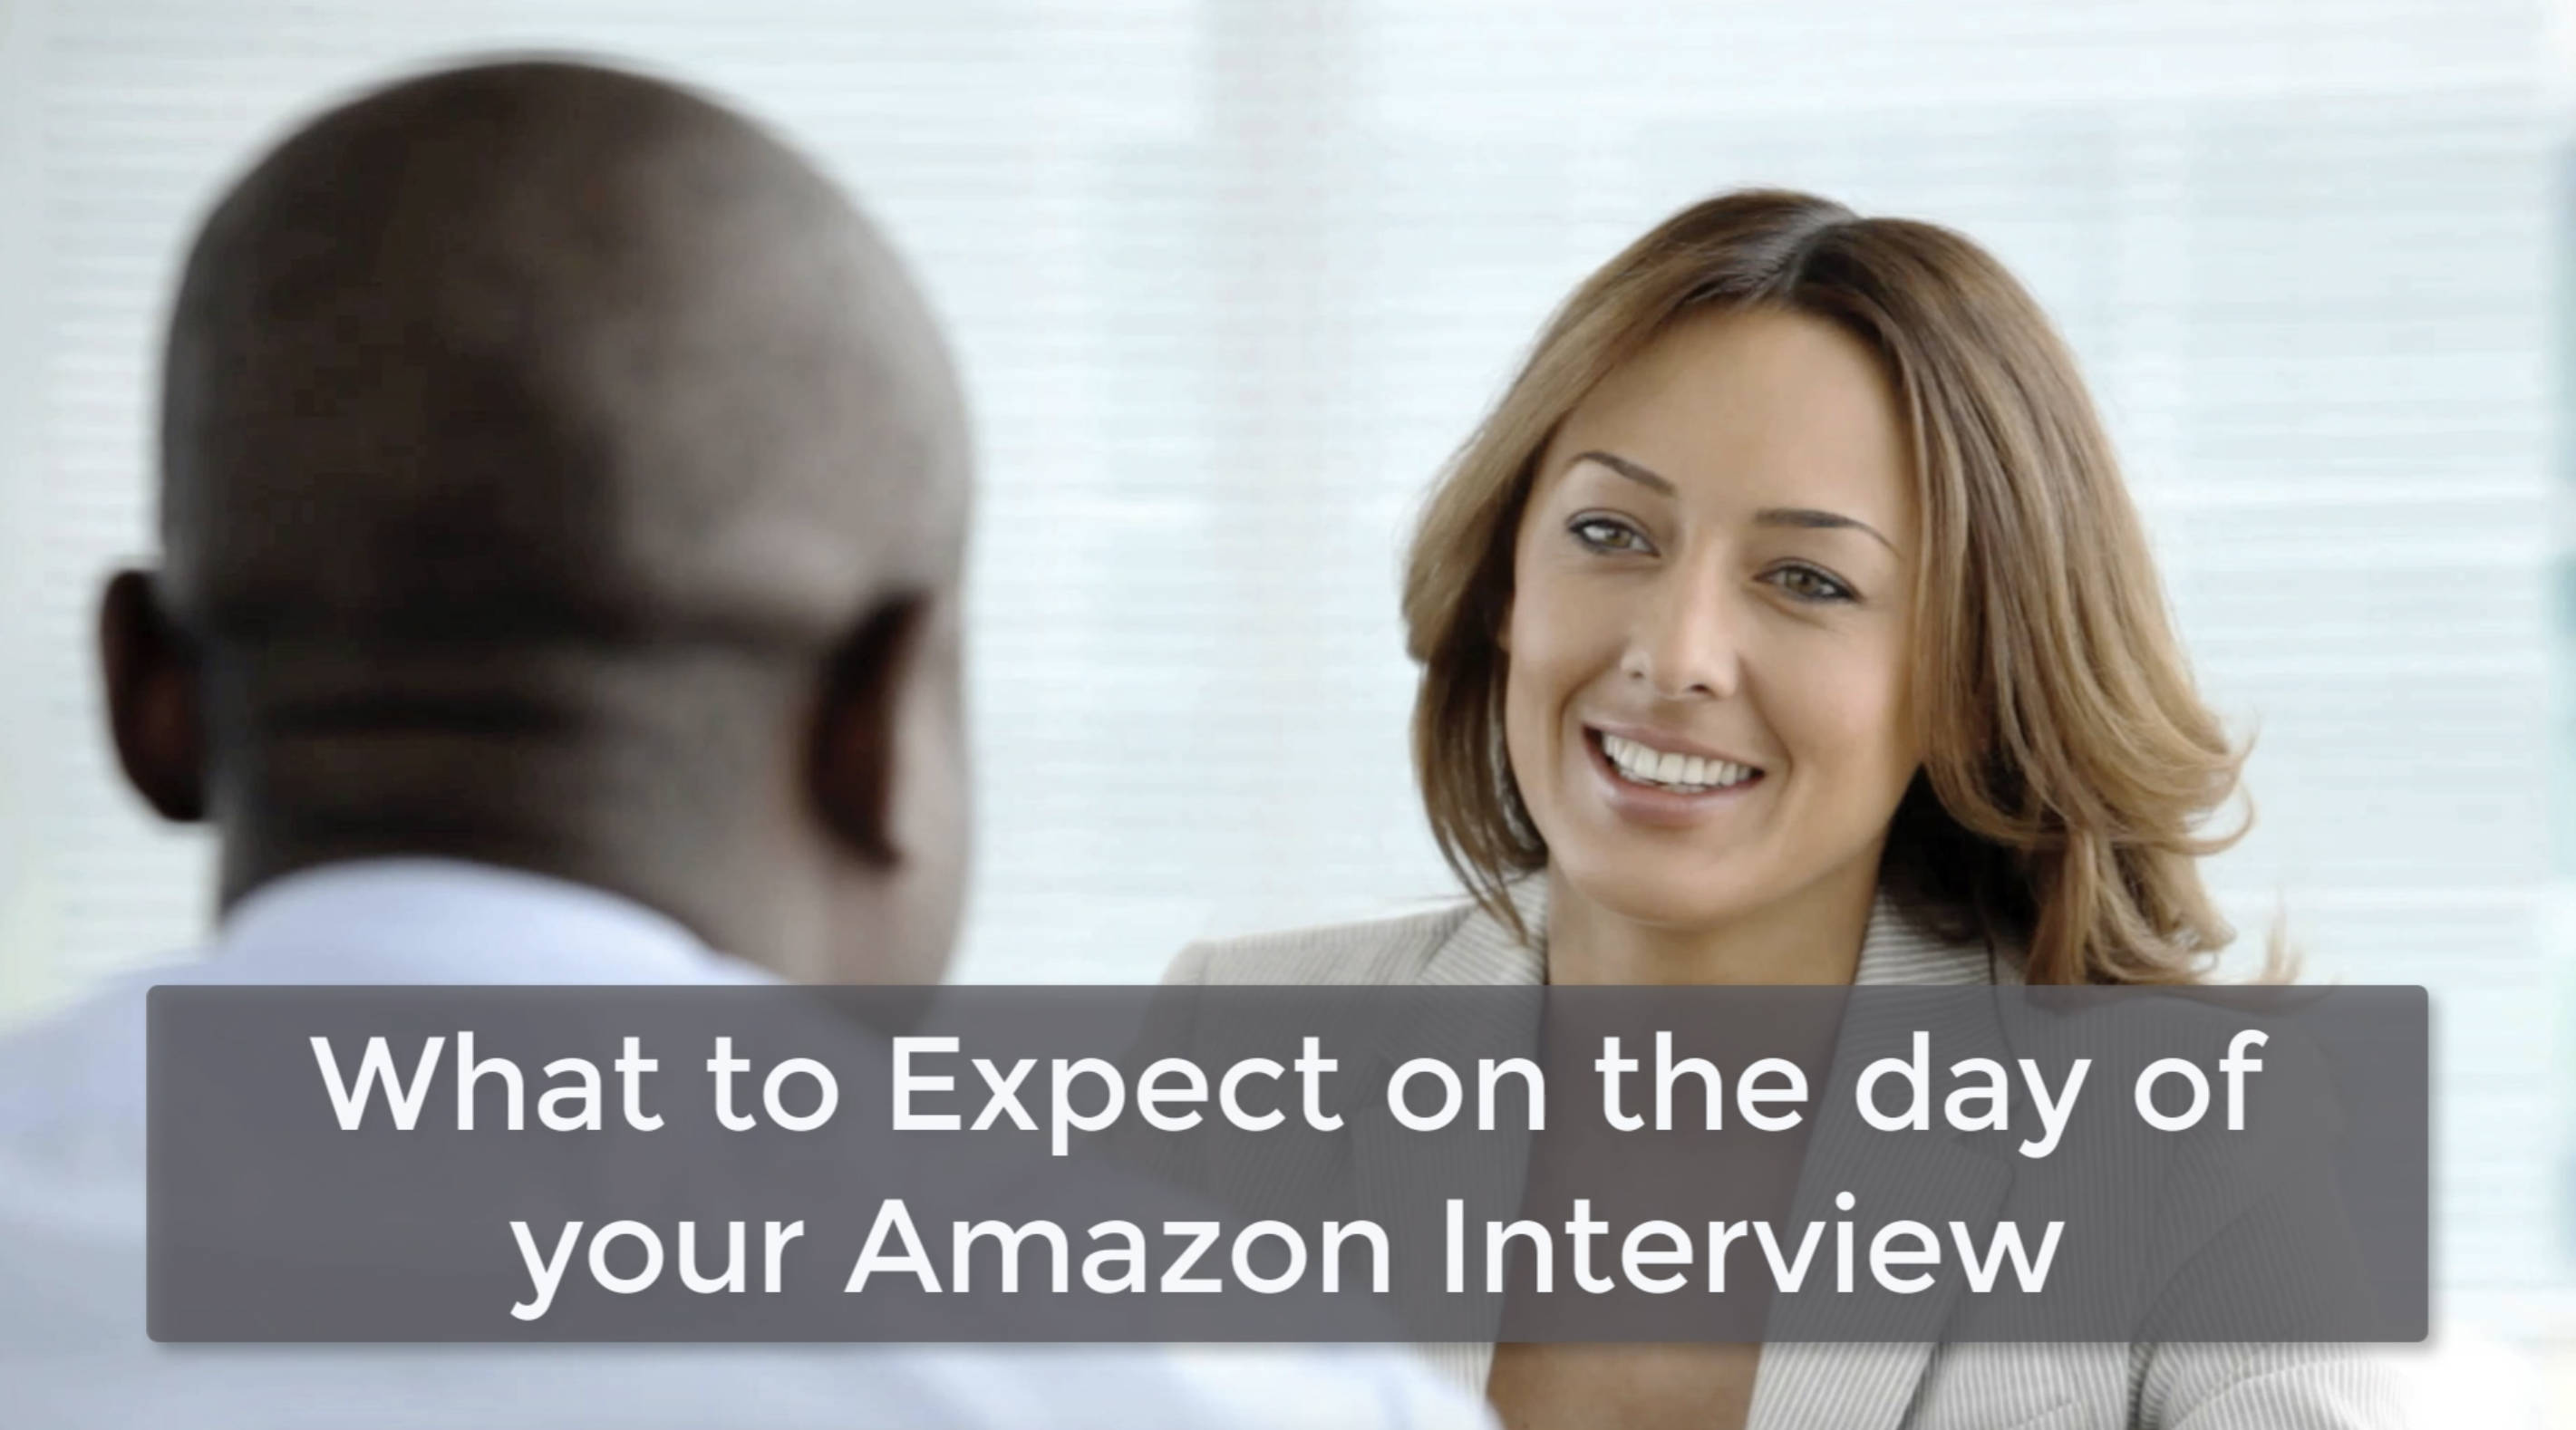 What to Expect on the day of your Amazon Interview